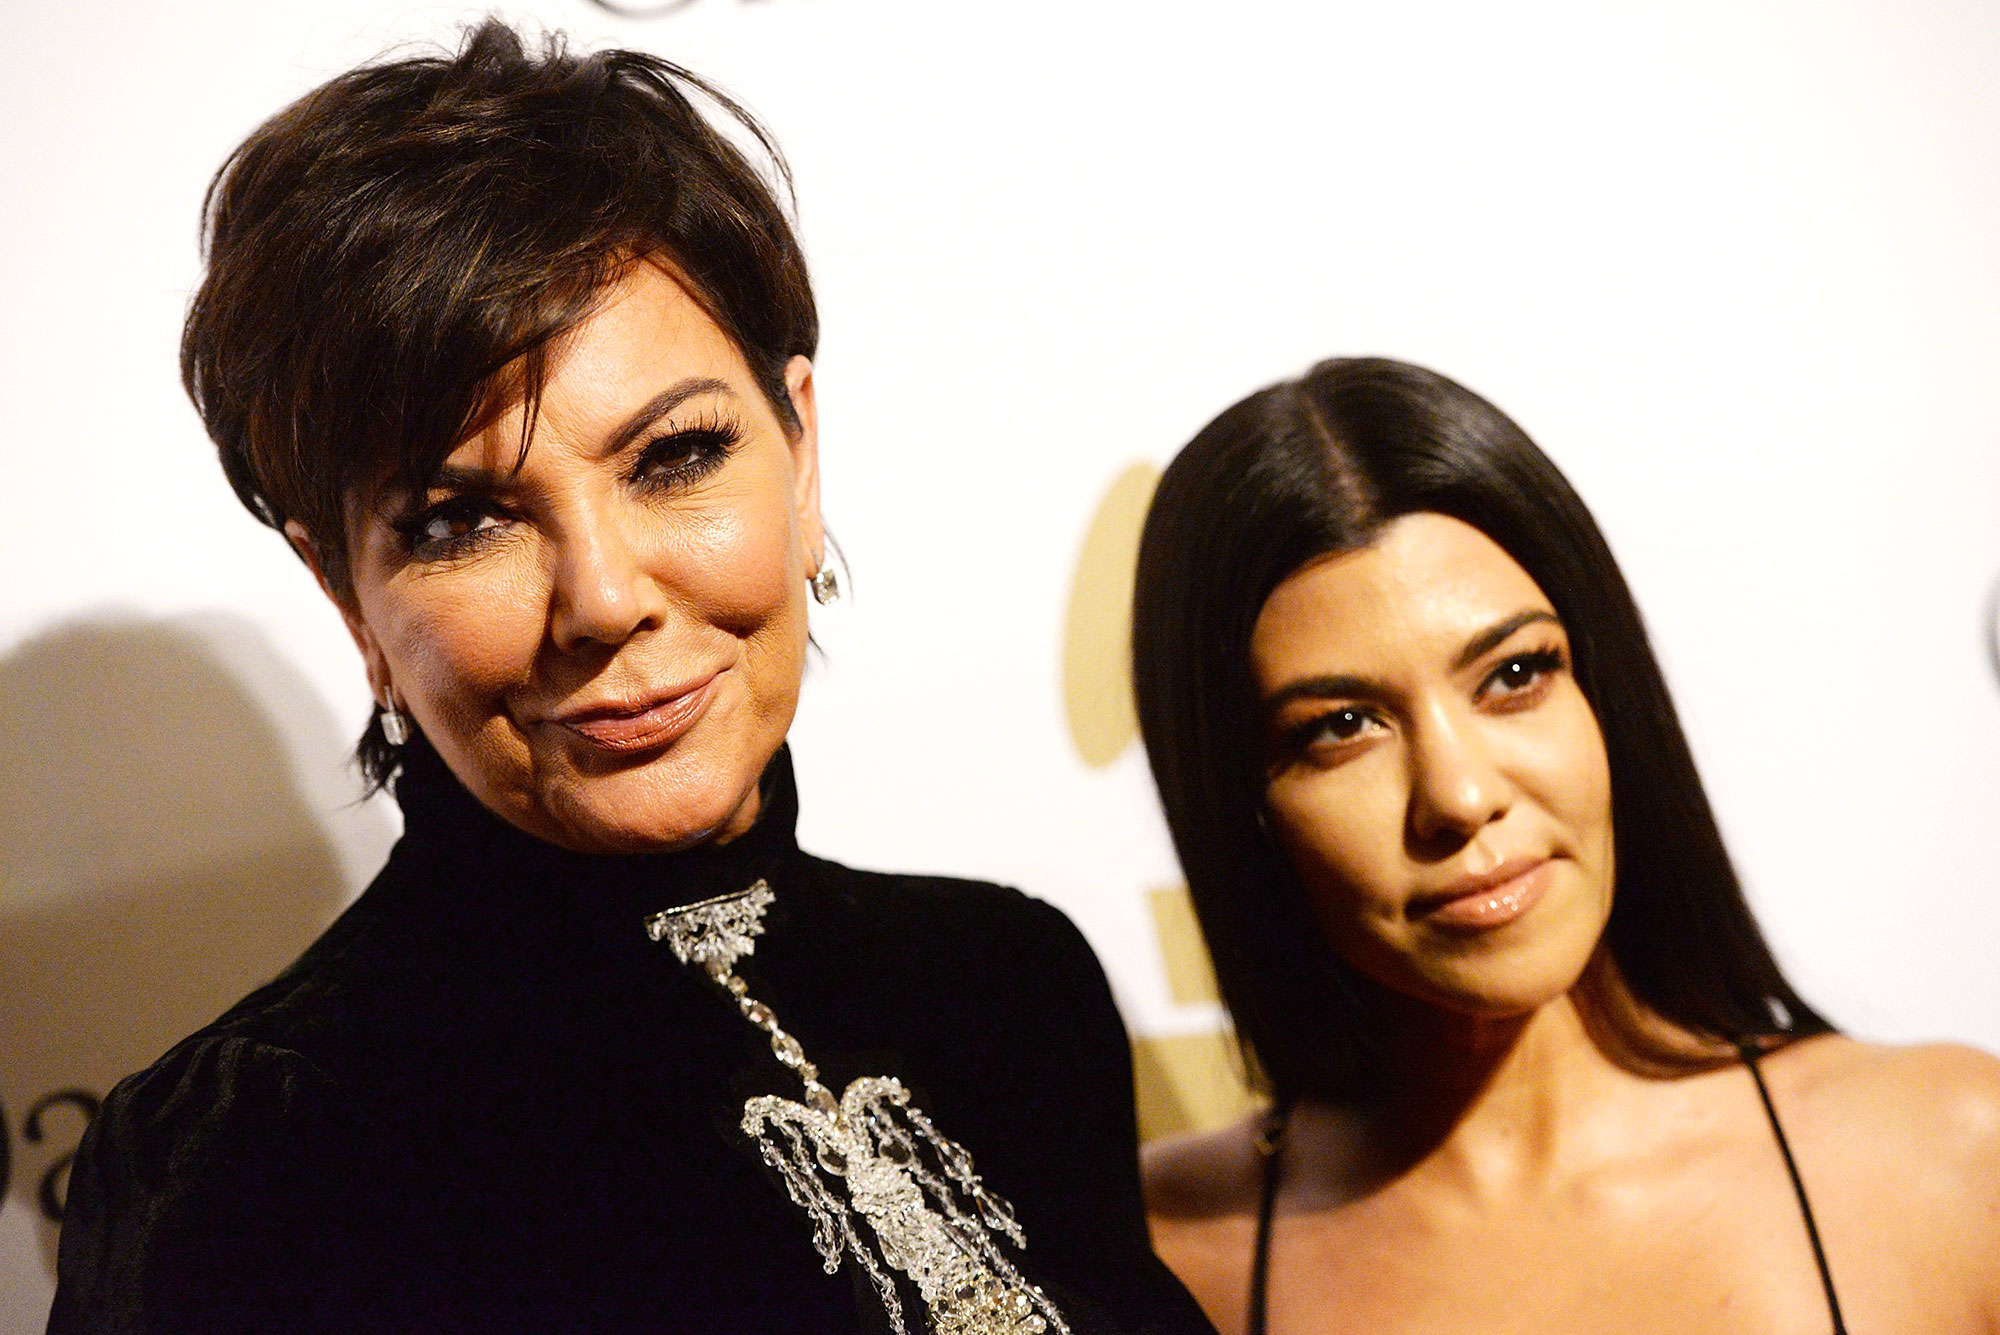 kris jenner kourtney kardashian birthday story - TV personalities Kris Jenner (L) and Kourtney Kardashian (R) walk the red carpet at the 2017 Pre-GRAMMY Gala And Salute to Industry Icons Honoring Debra Lee at The Beverly Hilton Hotel on February 11, 2017 in Beverly Hills, California.